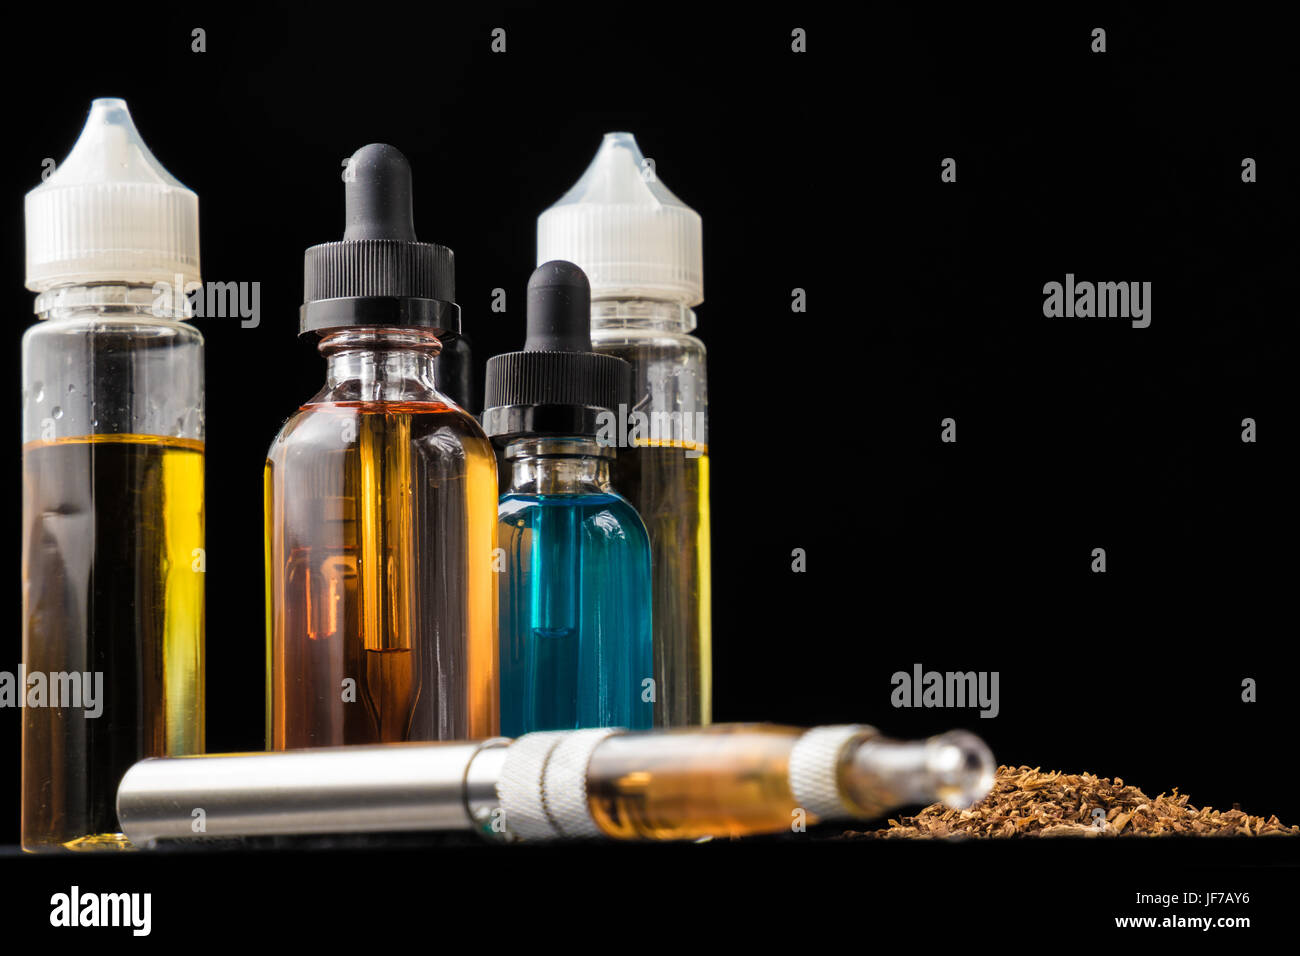 E-liquid bottles and e-cigarette with pile of grinded tobacco leaves - Stock Image